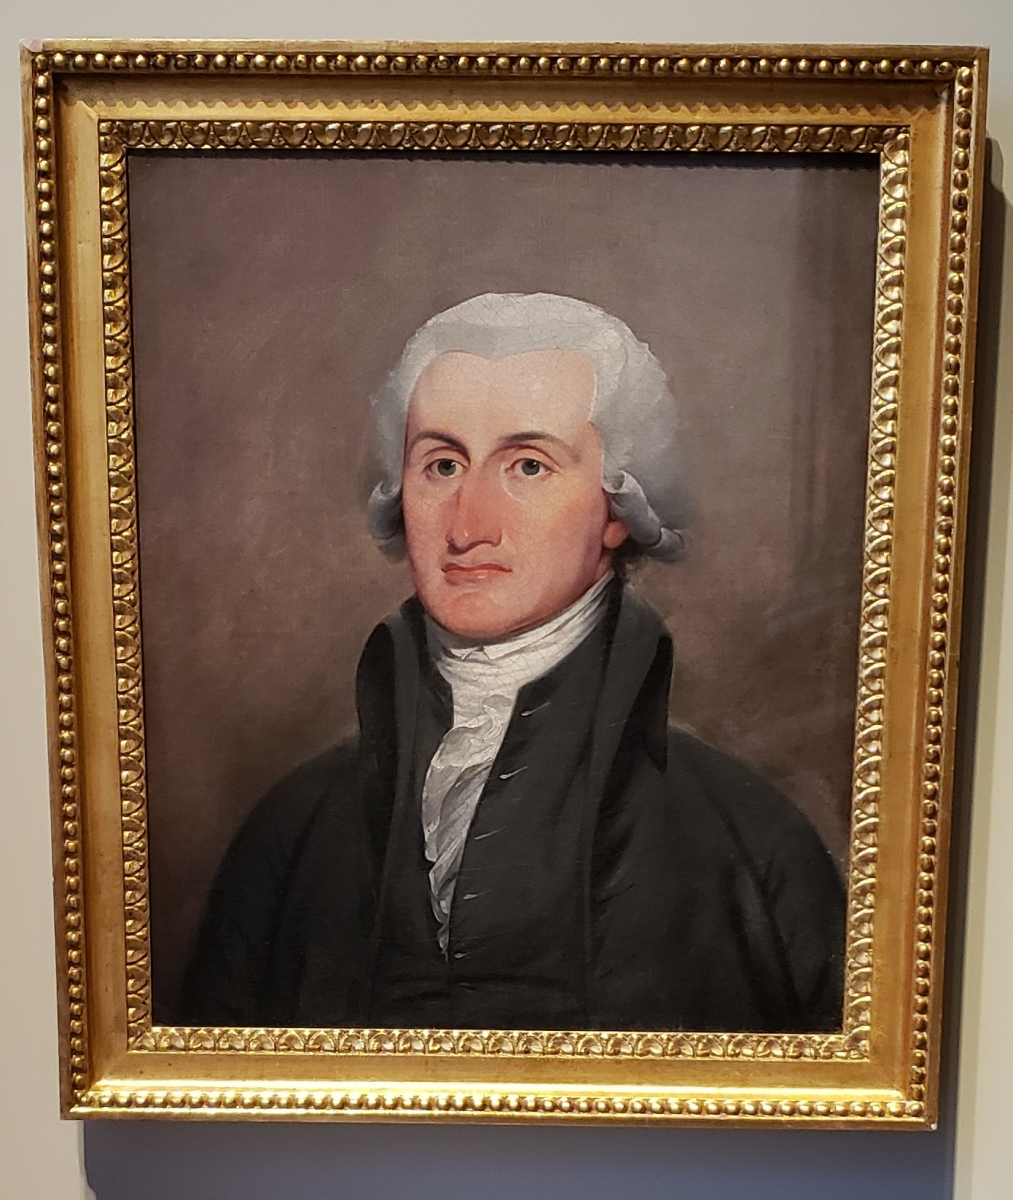 John Jay Portrait located in the Second Bank of the United States Portrait Gallery